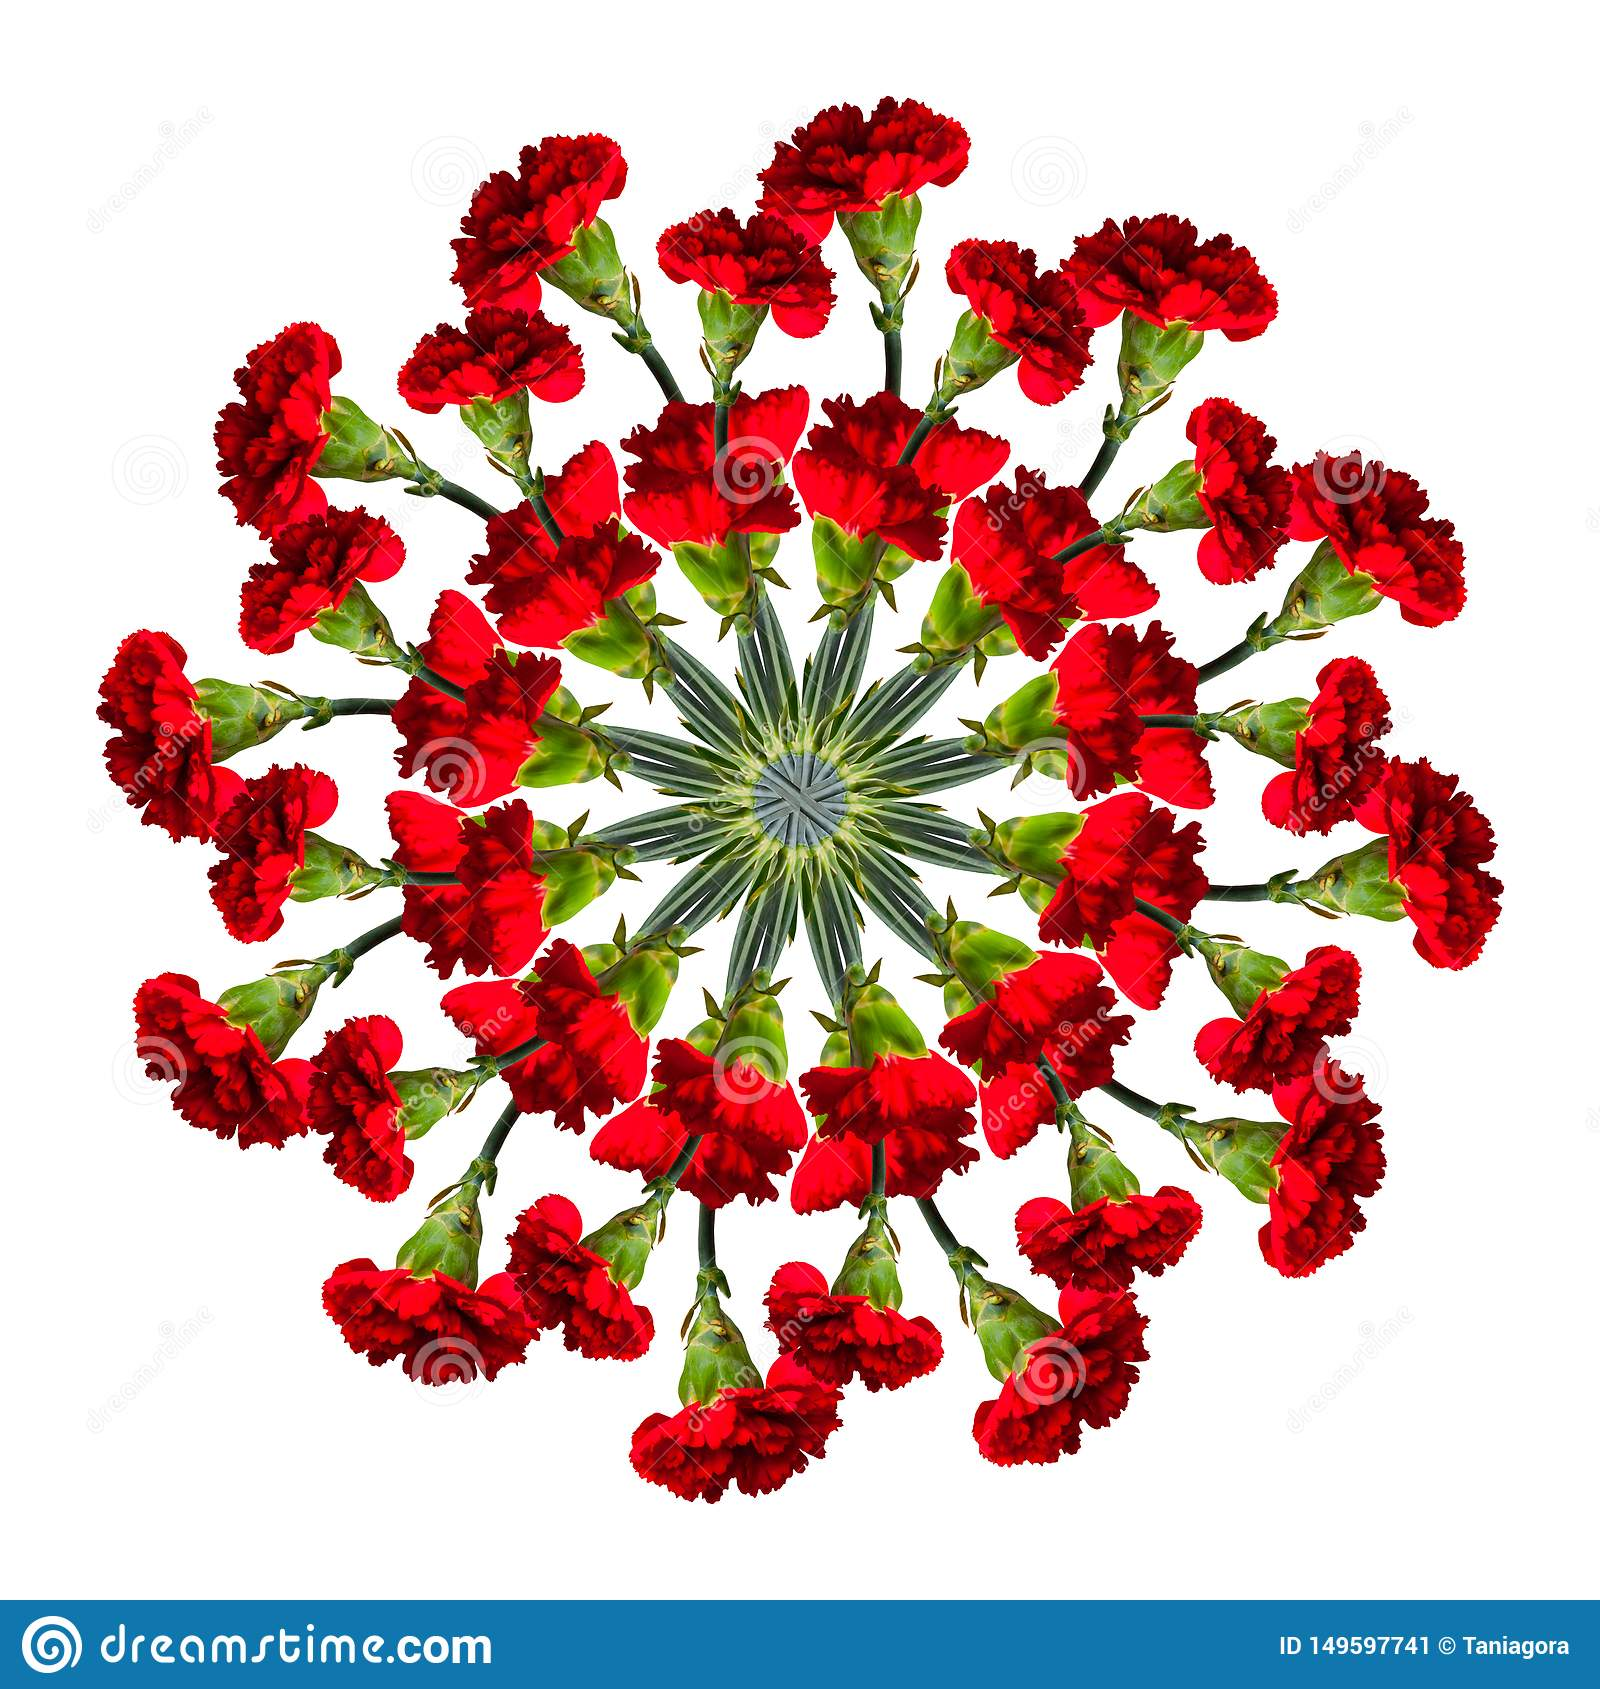 Collage of red beautiful carnation flowers on a white background.